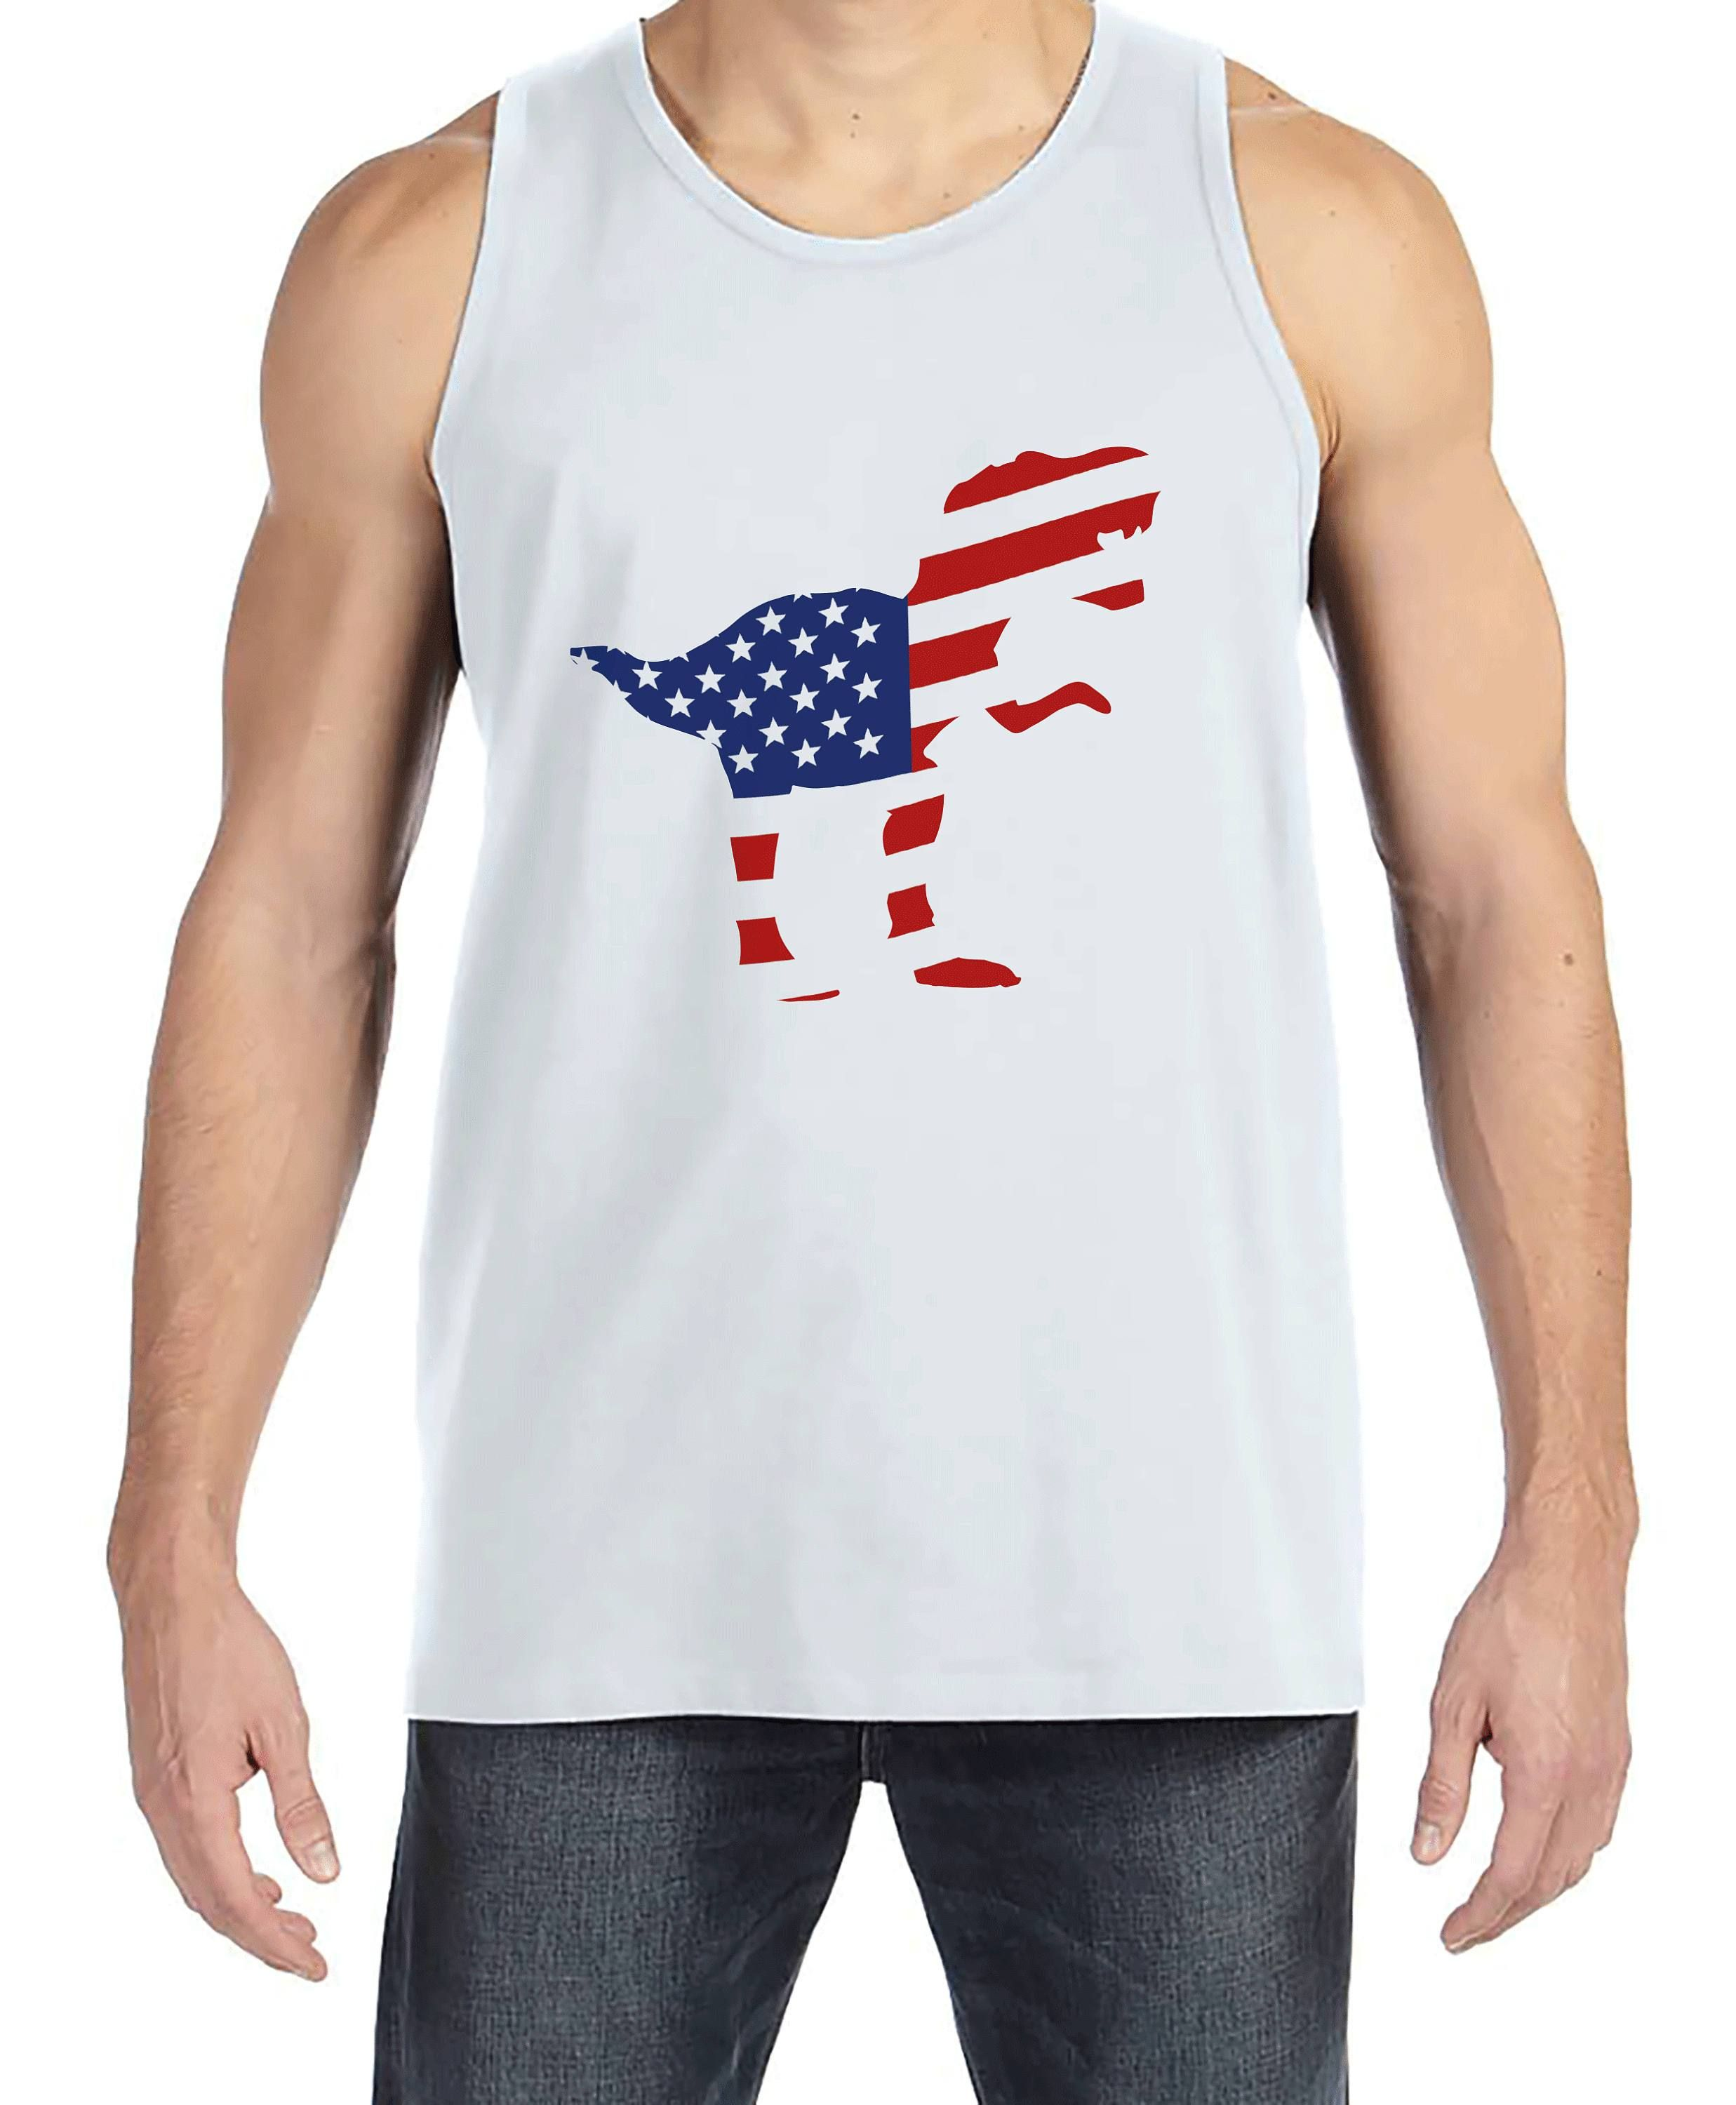 88fa2f2057085 Men s 4th of July Tank Top - American Flag Dinosaur - White Tank - Patriotic  Dino 4th of July Party Shirt - Men s Funny Patriotic Shirt